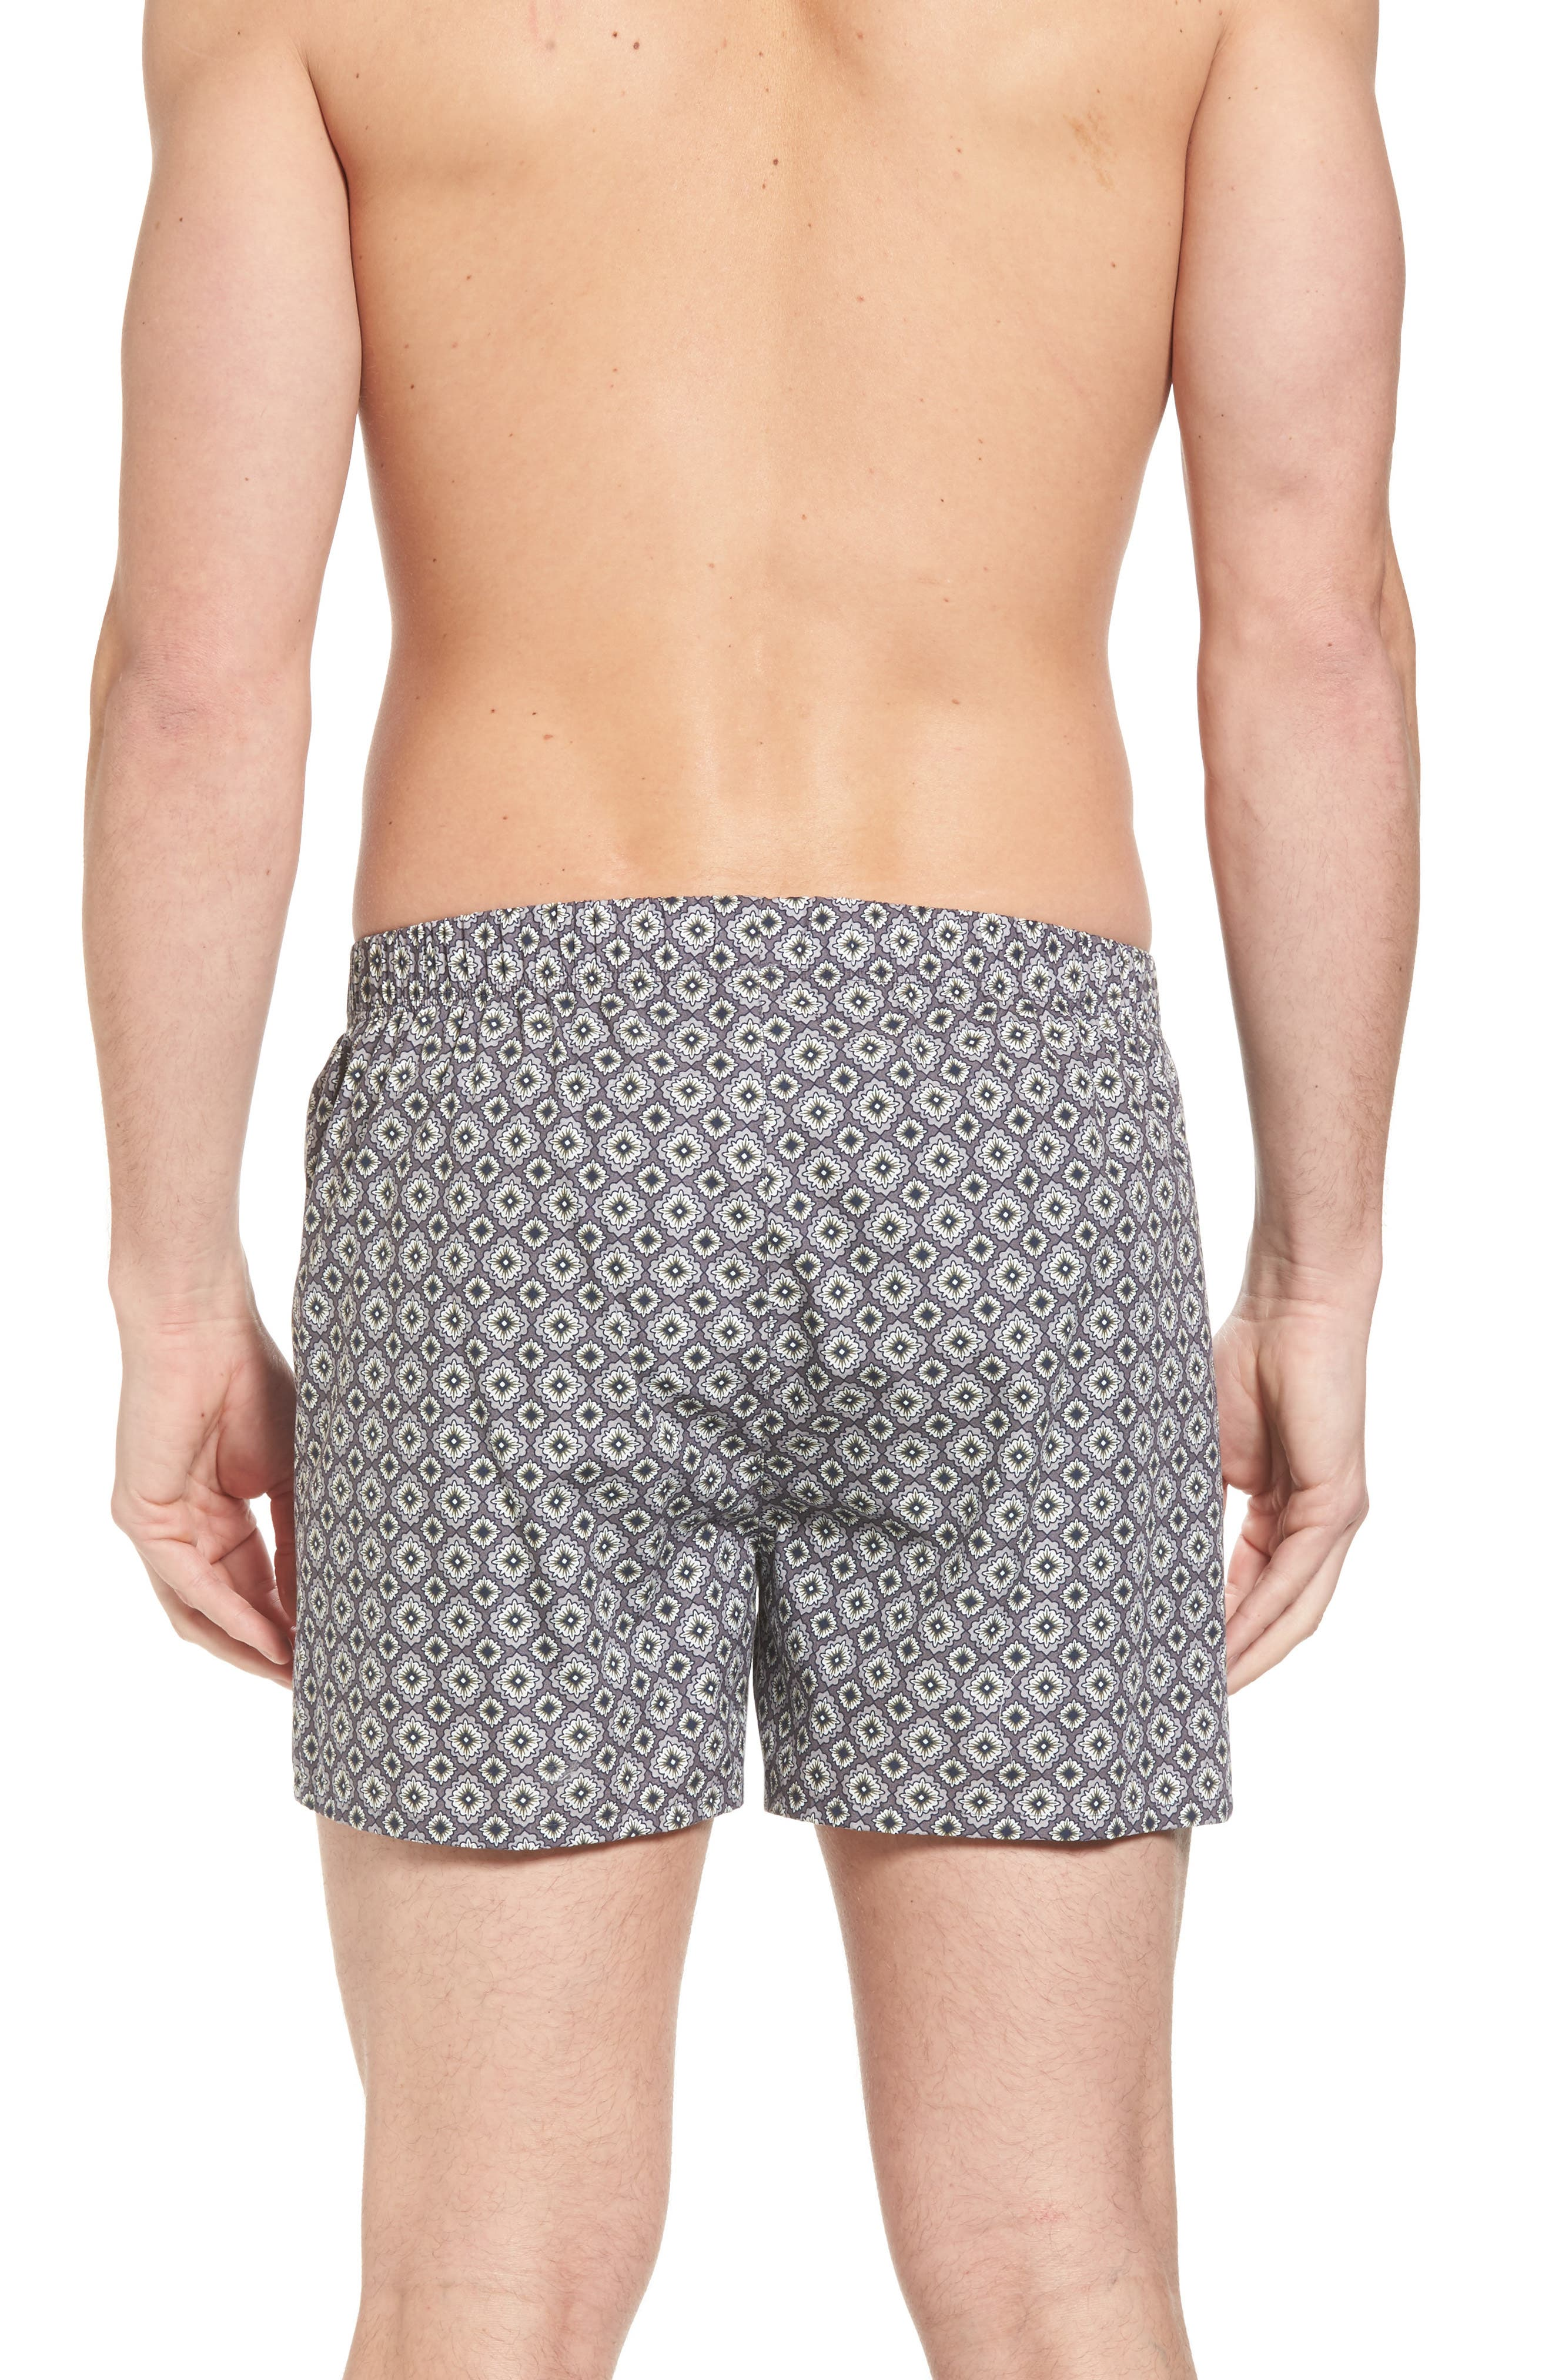 2-Pack Fancy Woven Boxers,                             Alternate thumbnail 3, color,                             Grey/ Squared Flowers